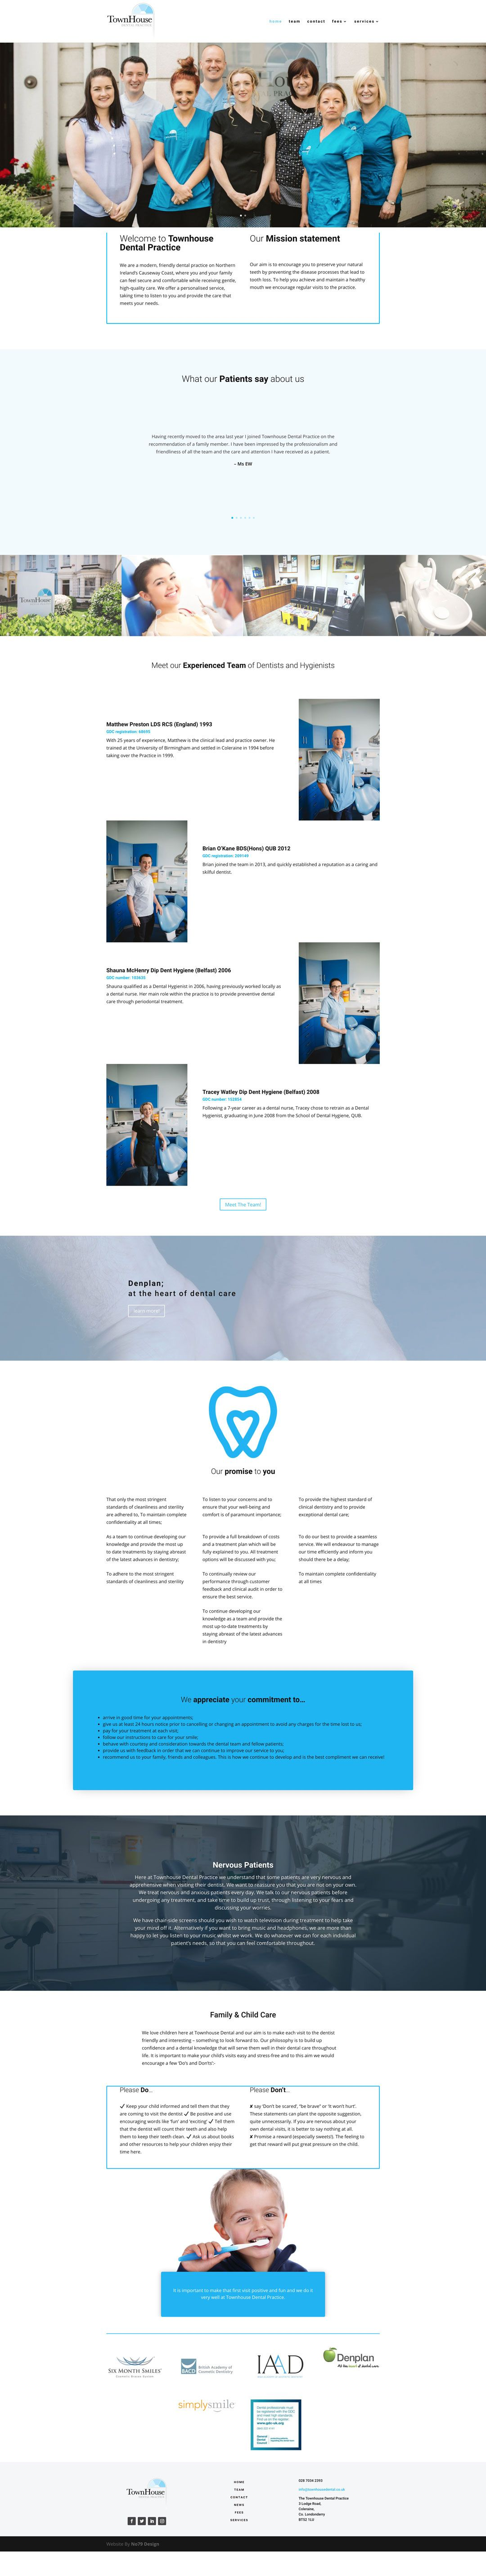 Pin By No79 Design On Homepage Layouts Dental Practice Homepage Layout Digital Design